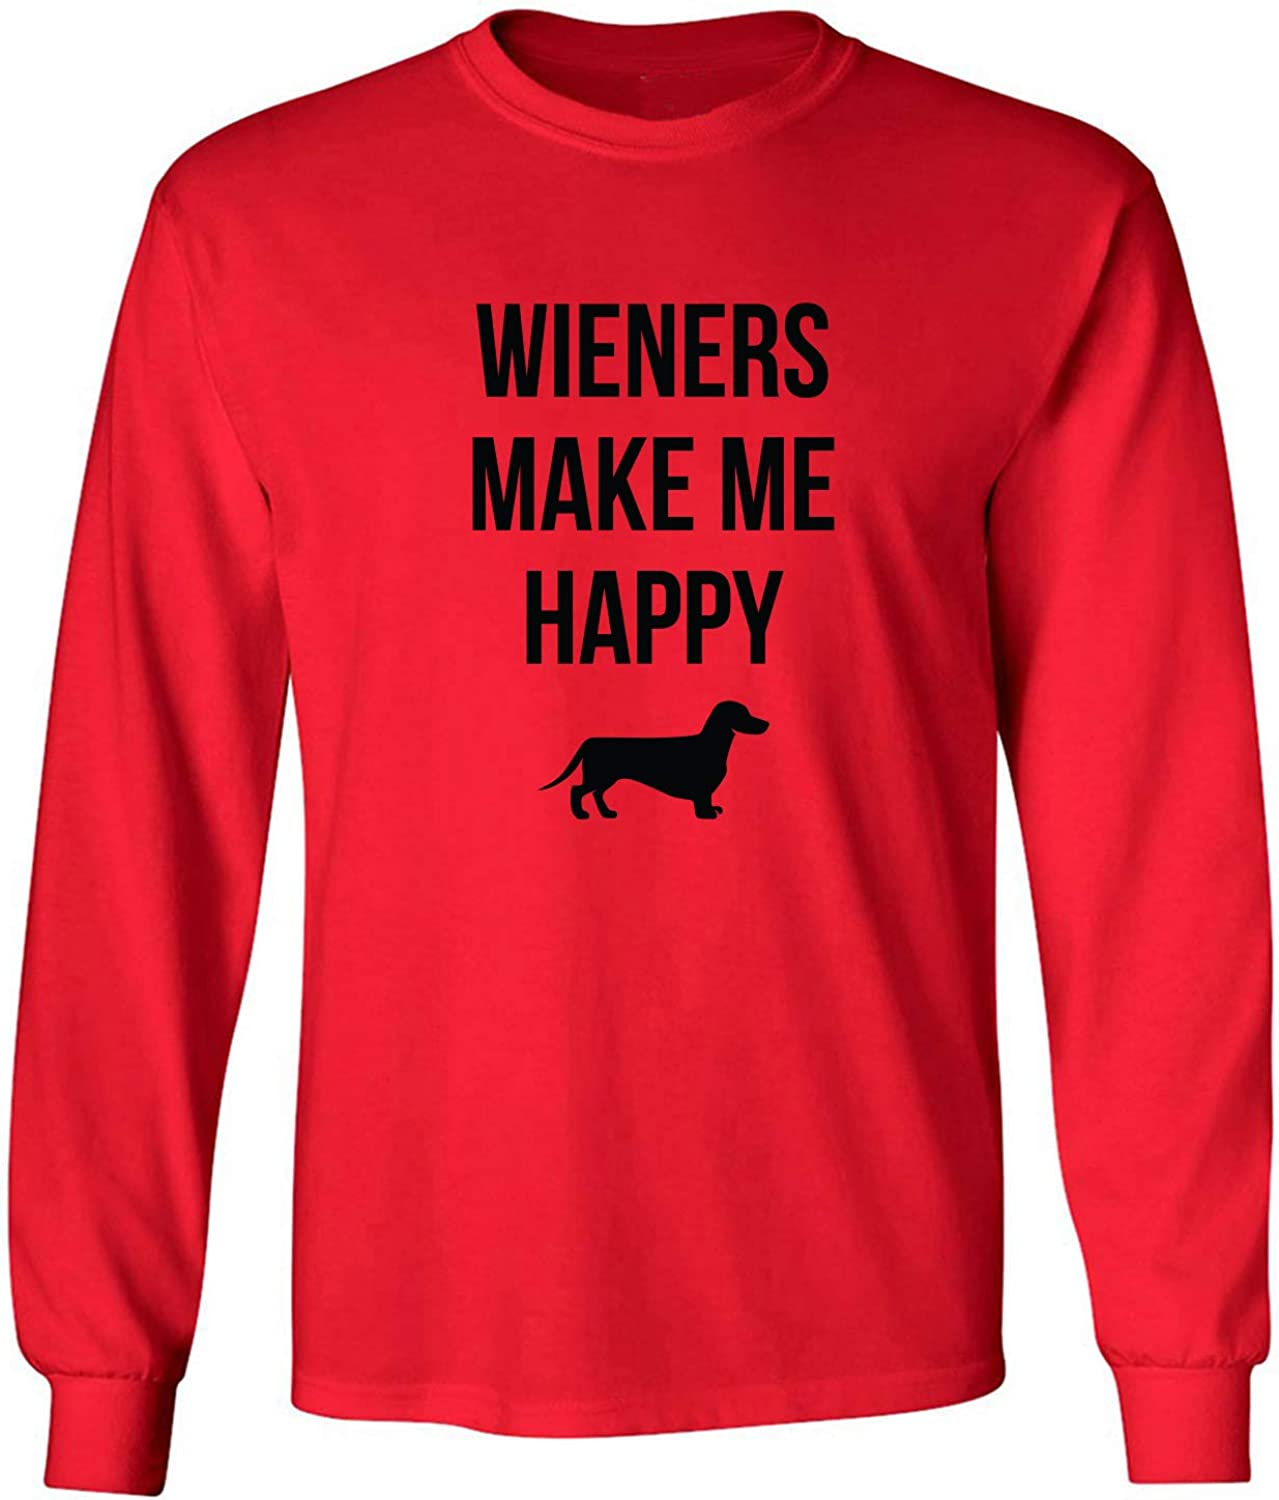 Wieners Make Me Happy Adult Long Sleeve T-Shirt in Red - XXX-Large